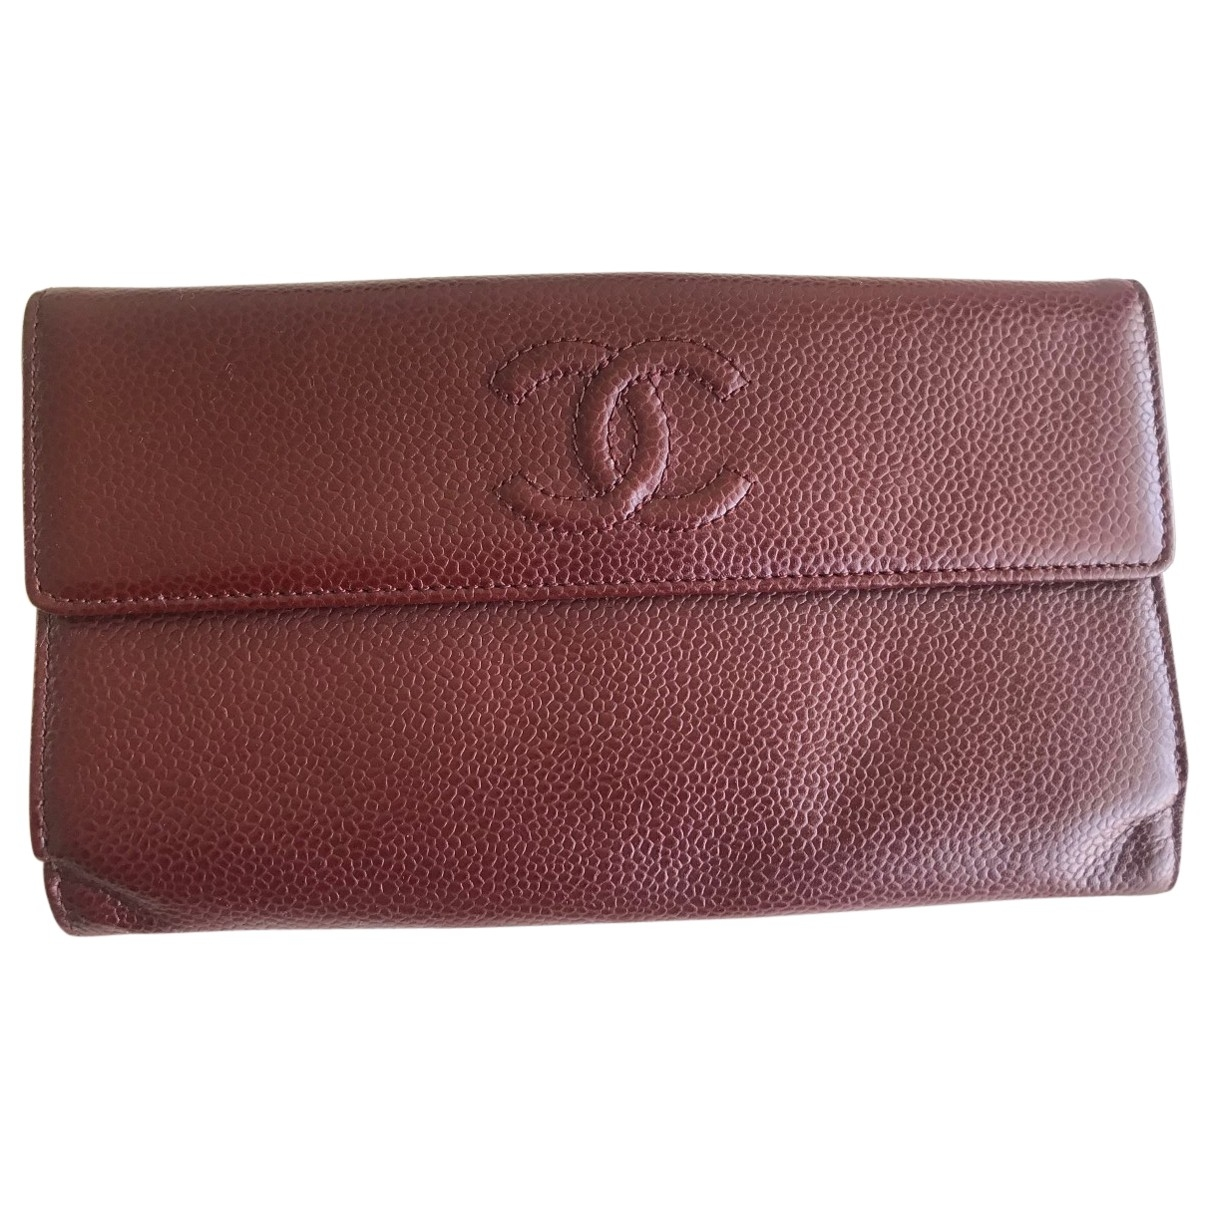 Chanel \N Burgundy Leather wallet for Women \N